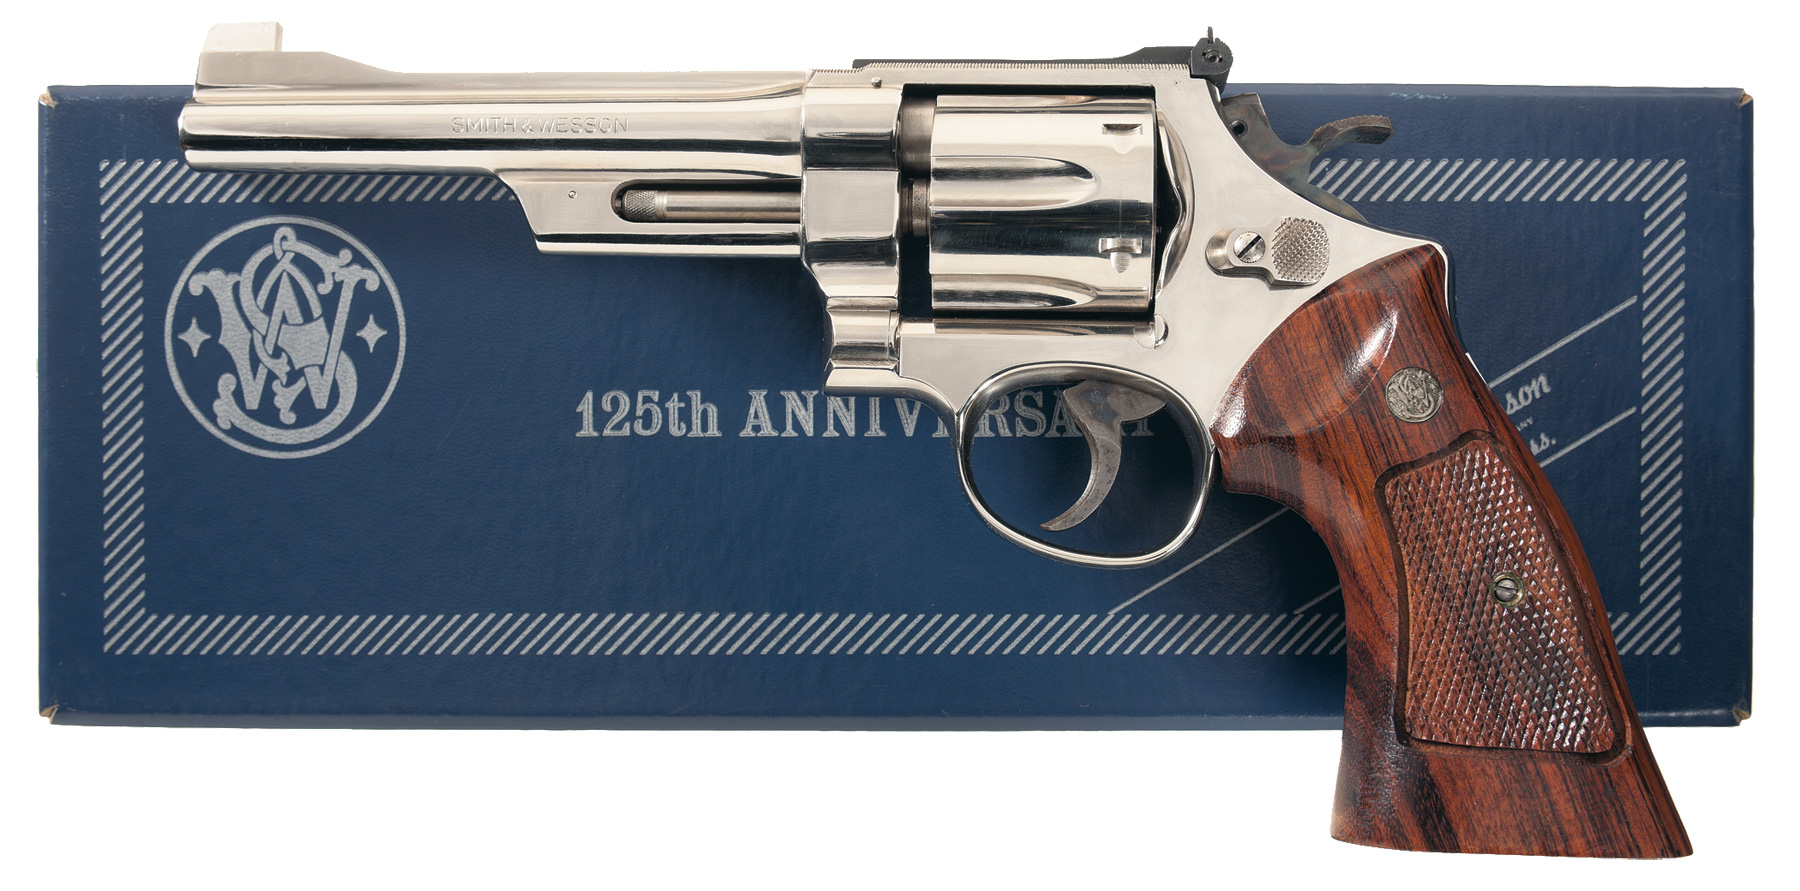 Author's first hands on experience with a Smith & Wesson Model 27 was with a nickeled version such as this one. (Picture courtesy Rock Island Auction).